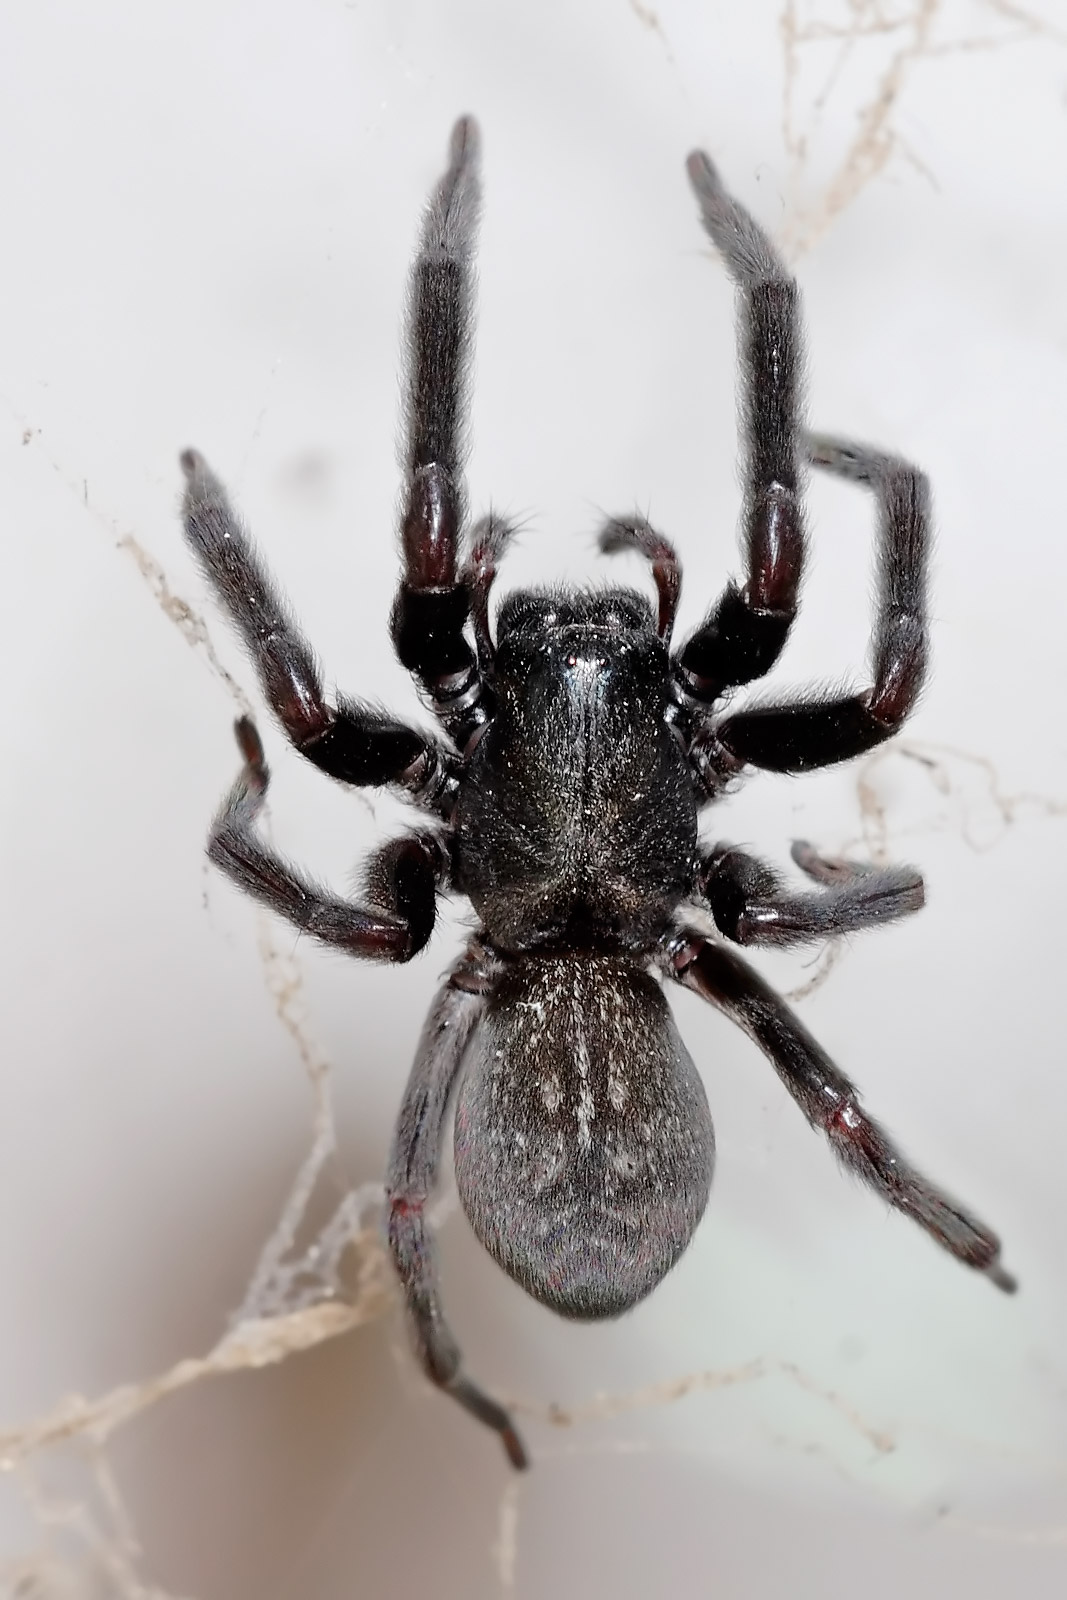 Black House Spider Wikipedia